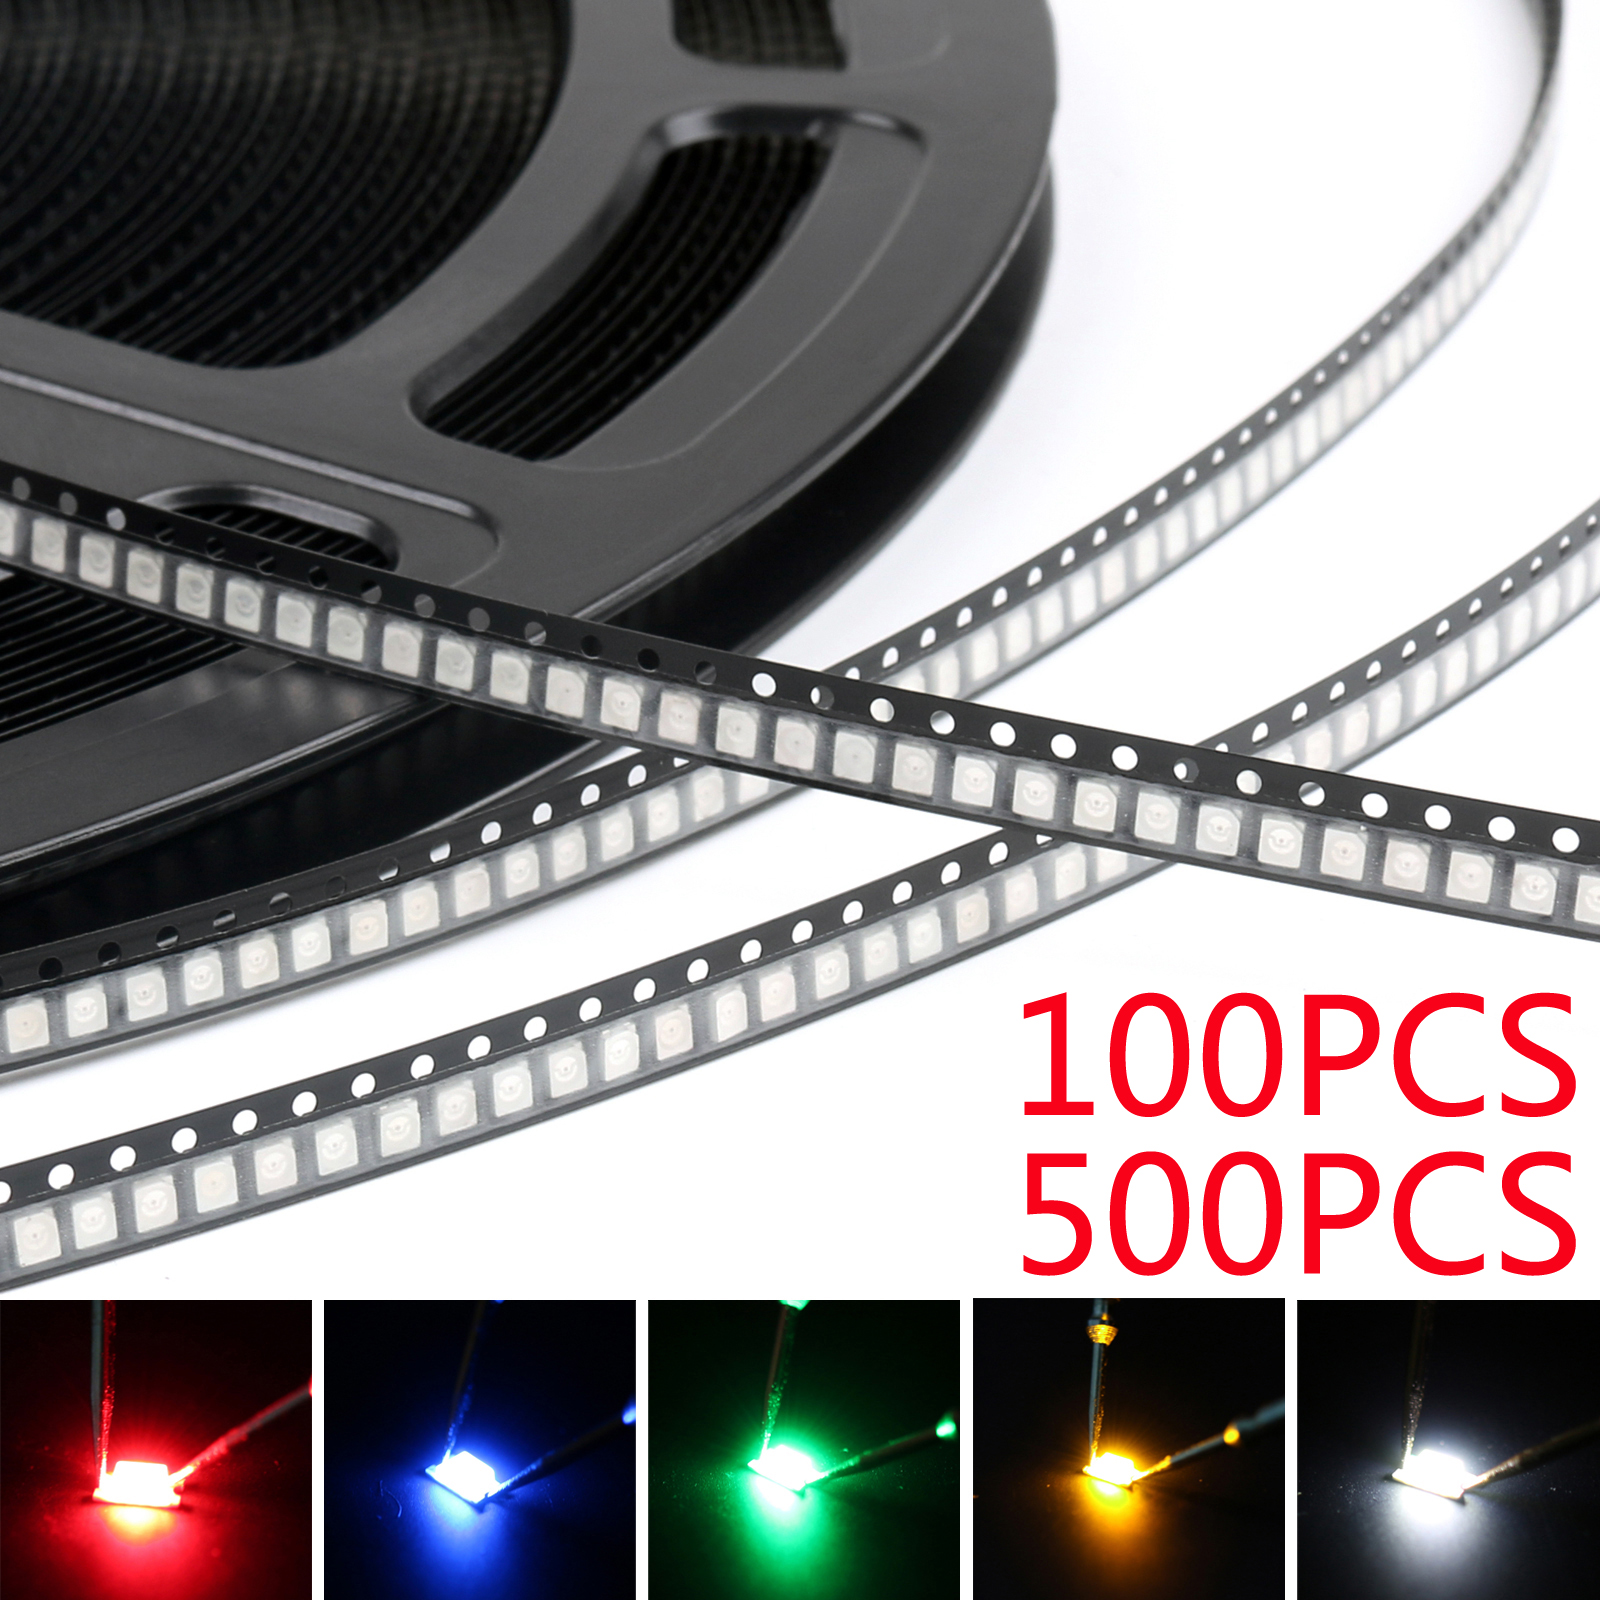 7colors 140pcs 1210 3528 SMD LED Diodes White Red Yellow Green Blue Mix Kits